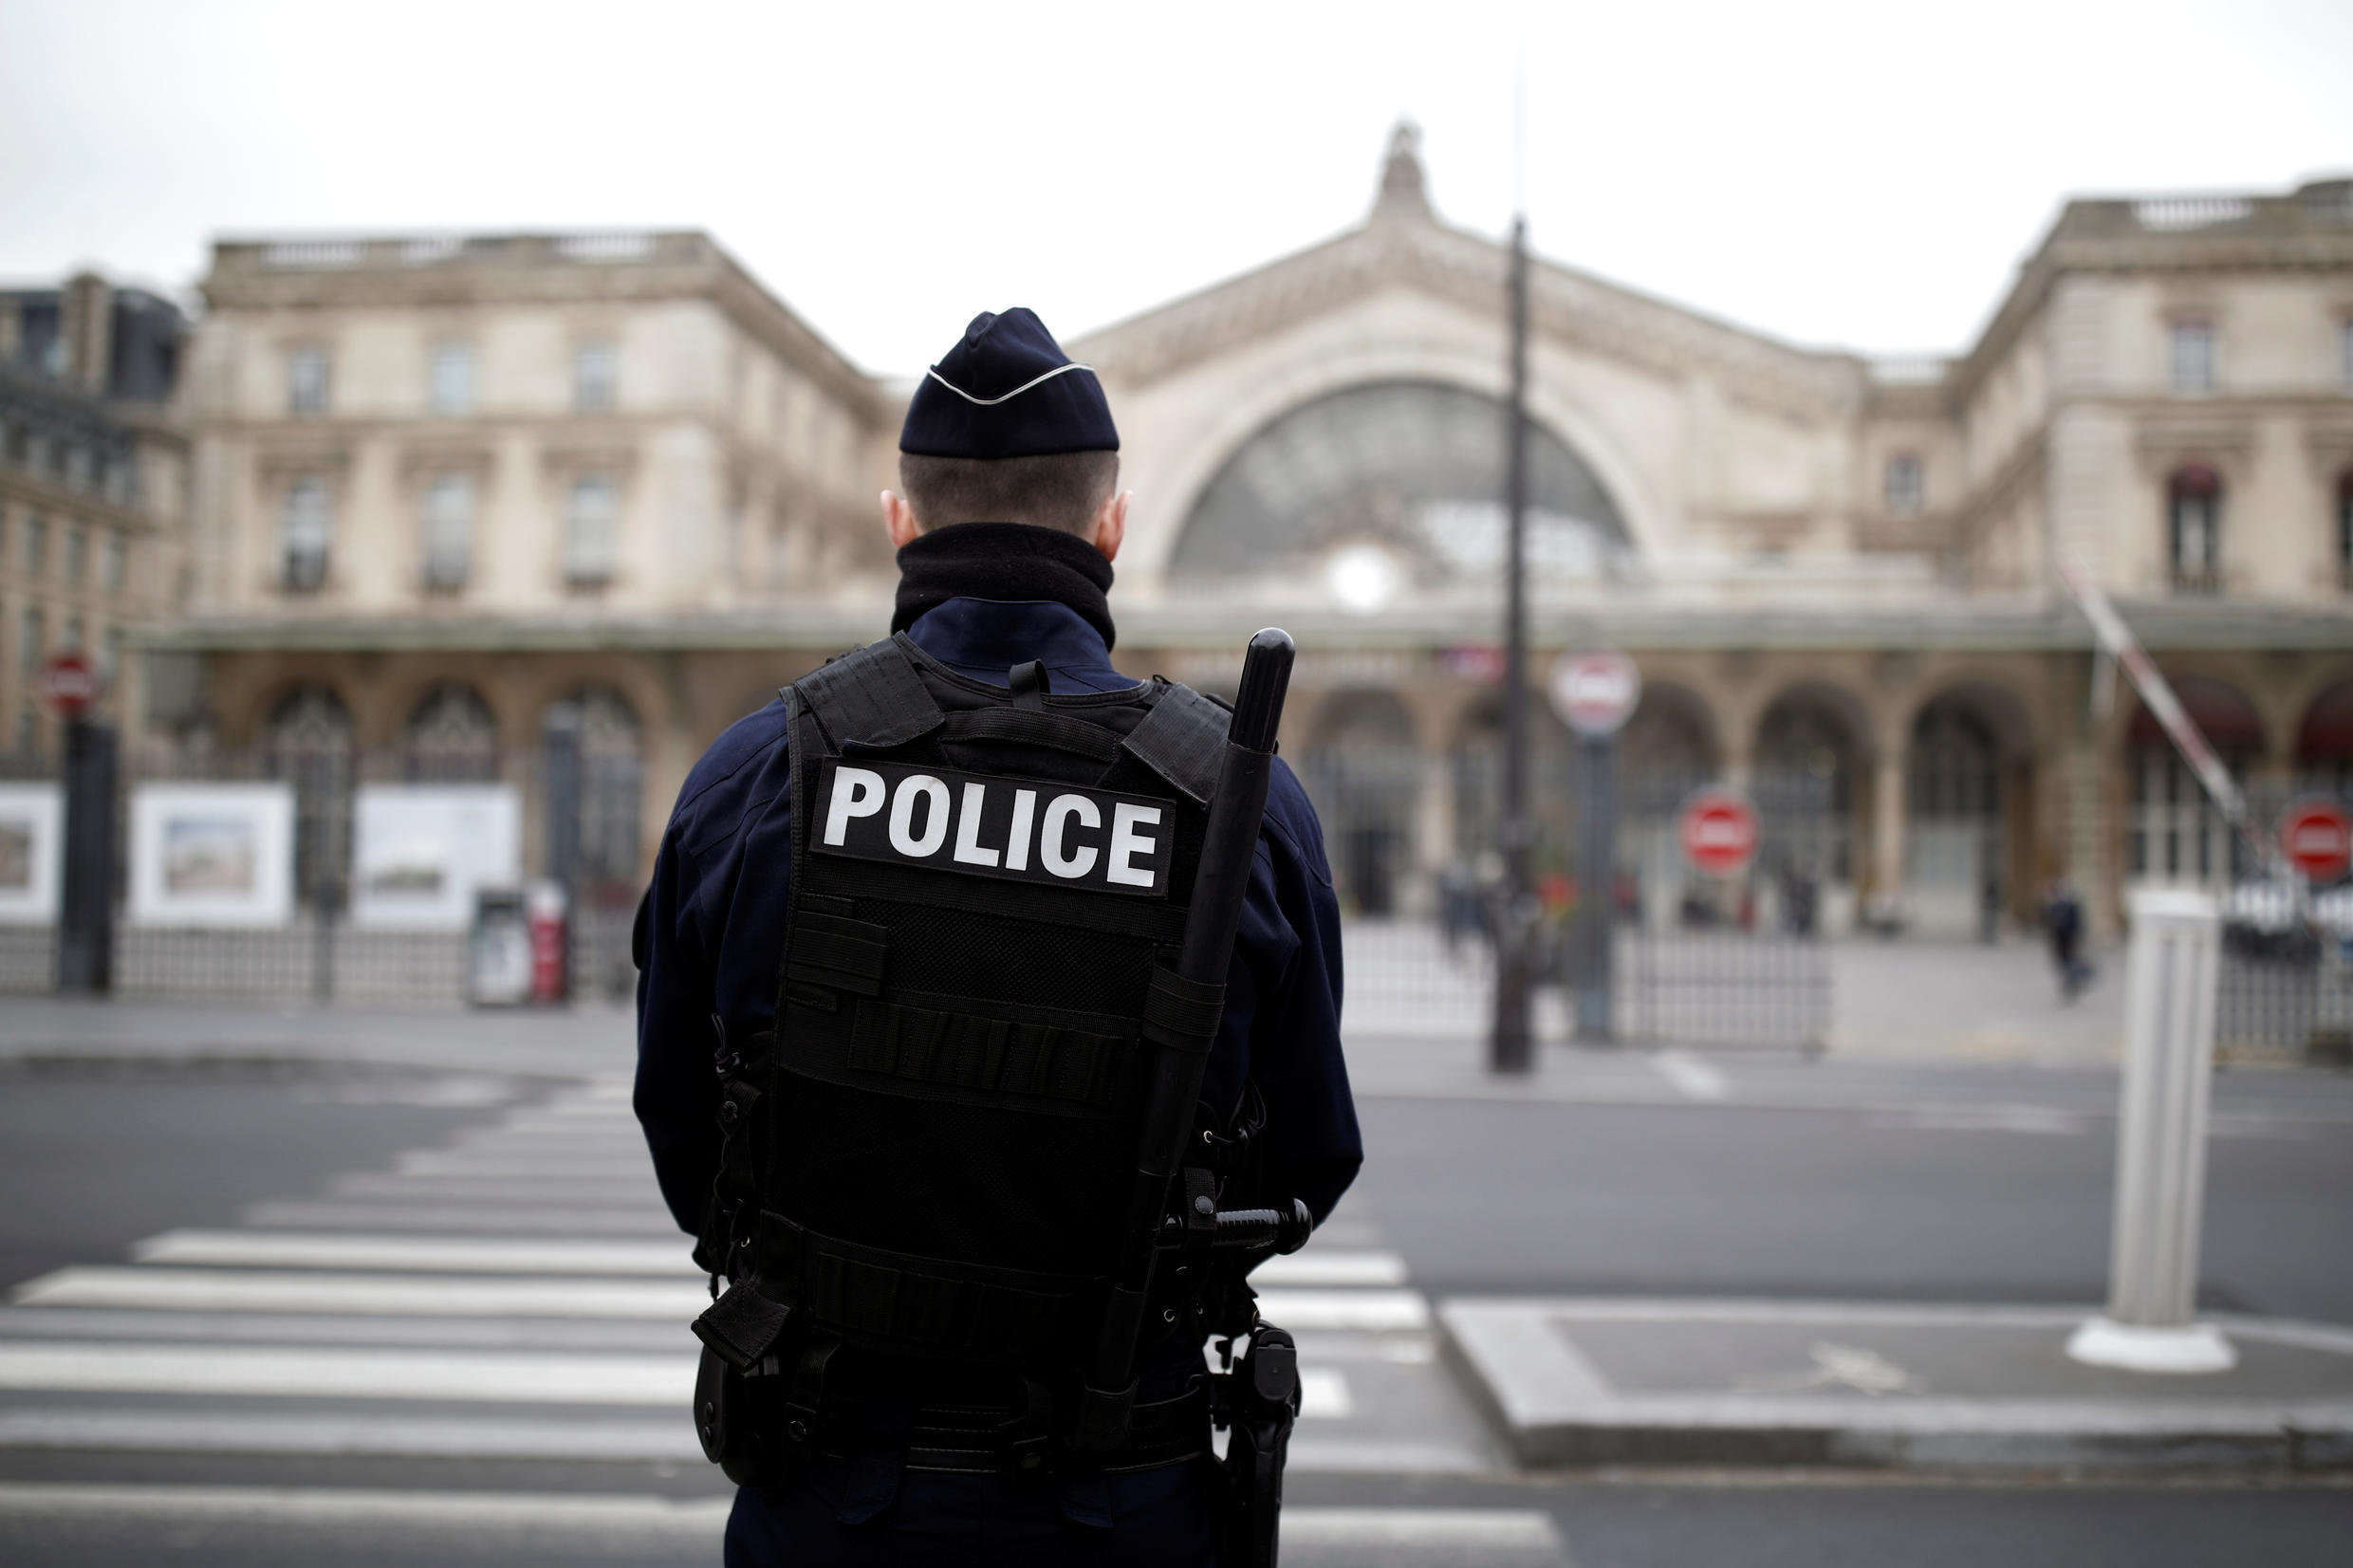 """French police tactics, including the use of """"chokehold"""" restraining techniques, have come under growing criticism."""